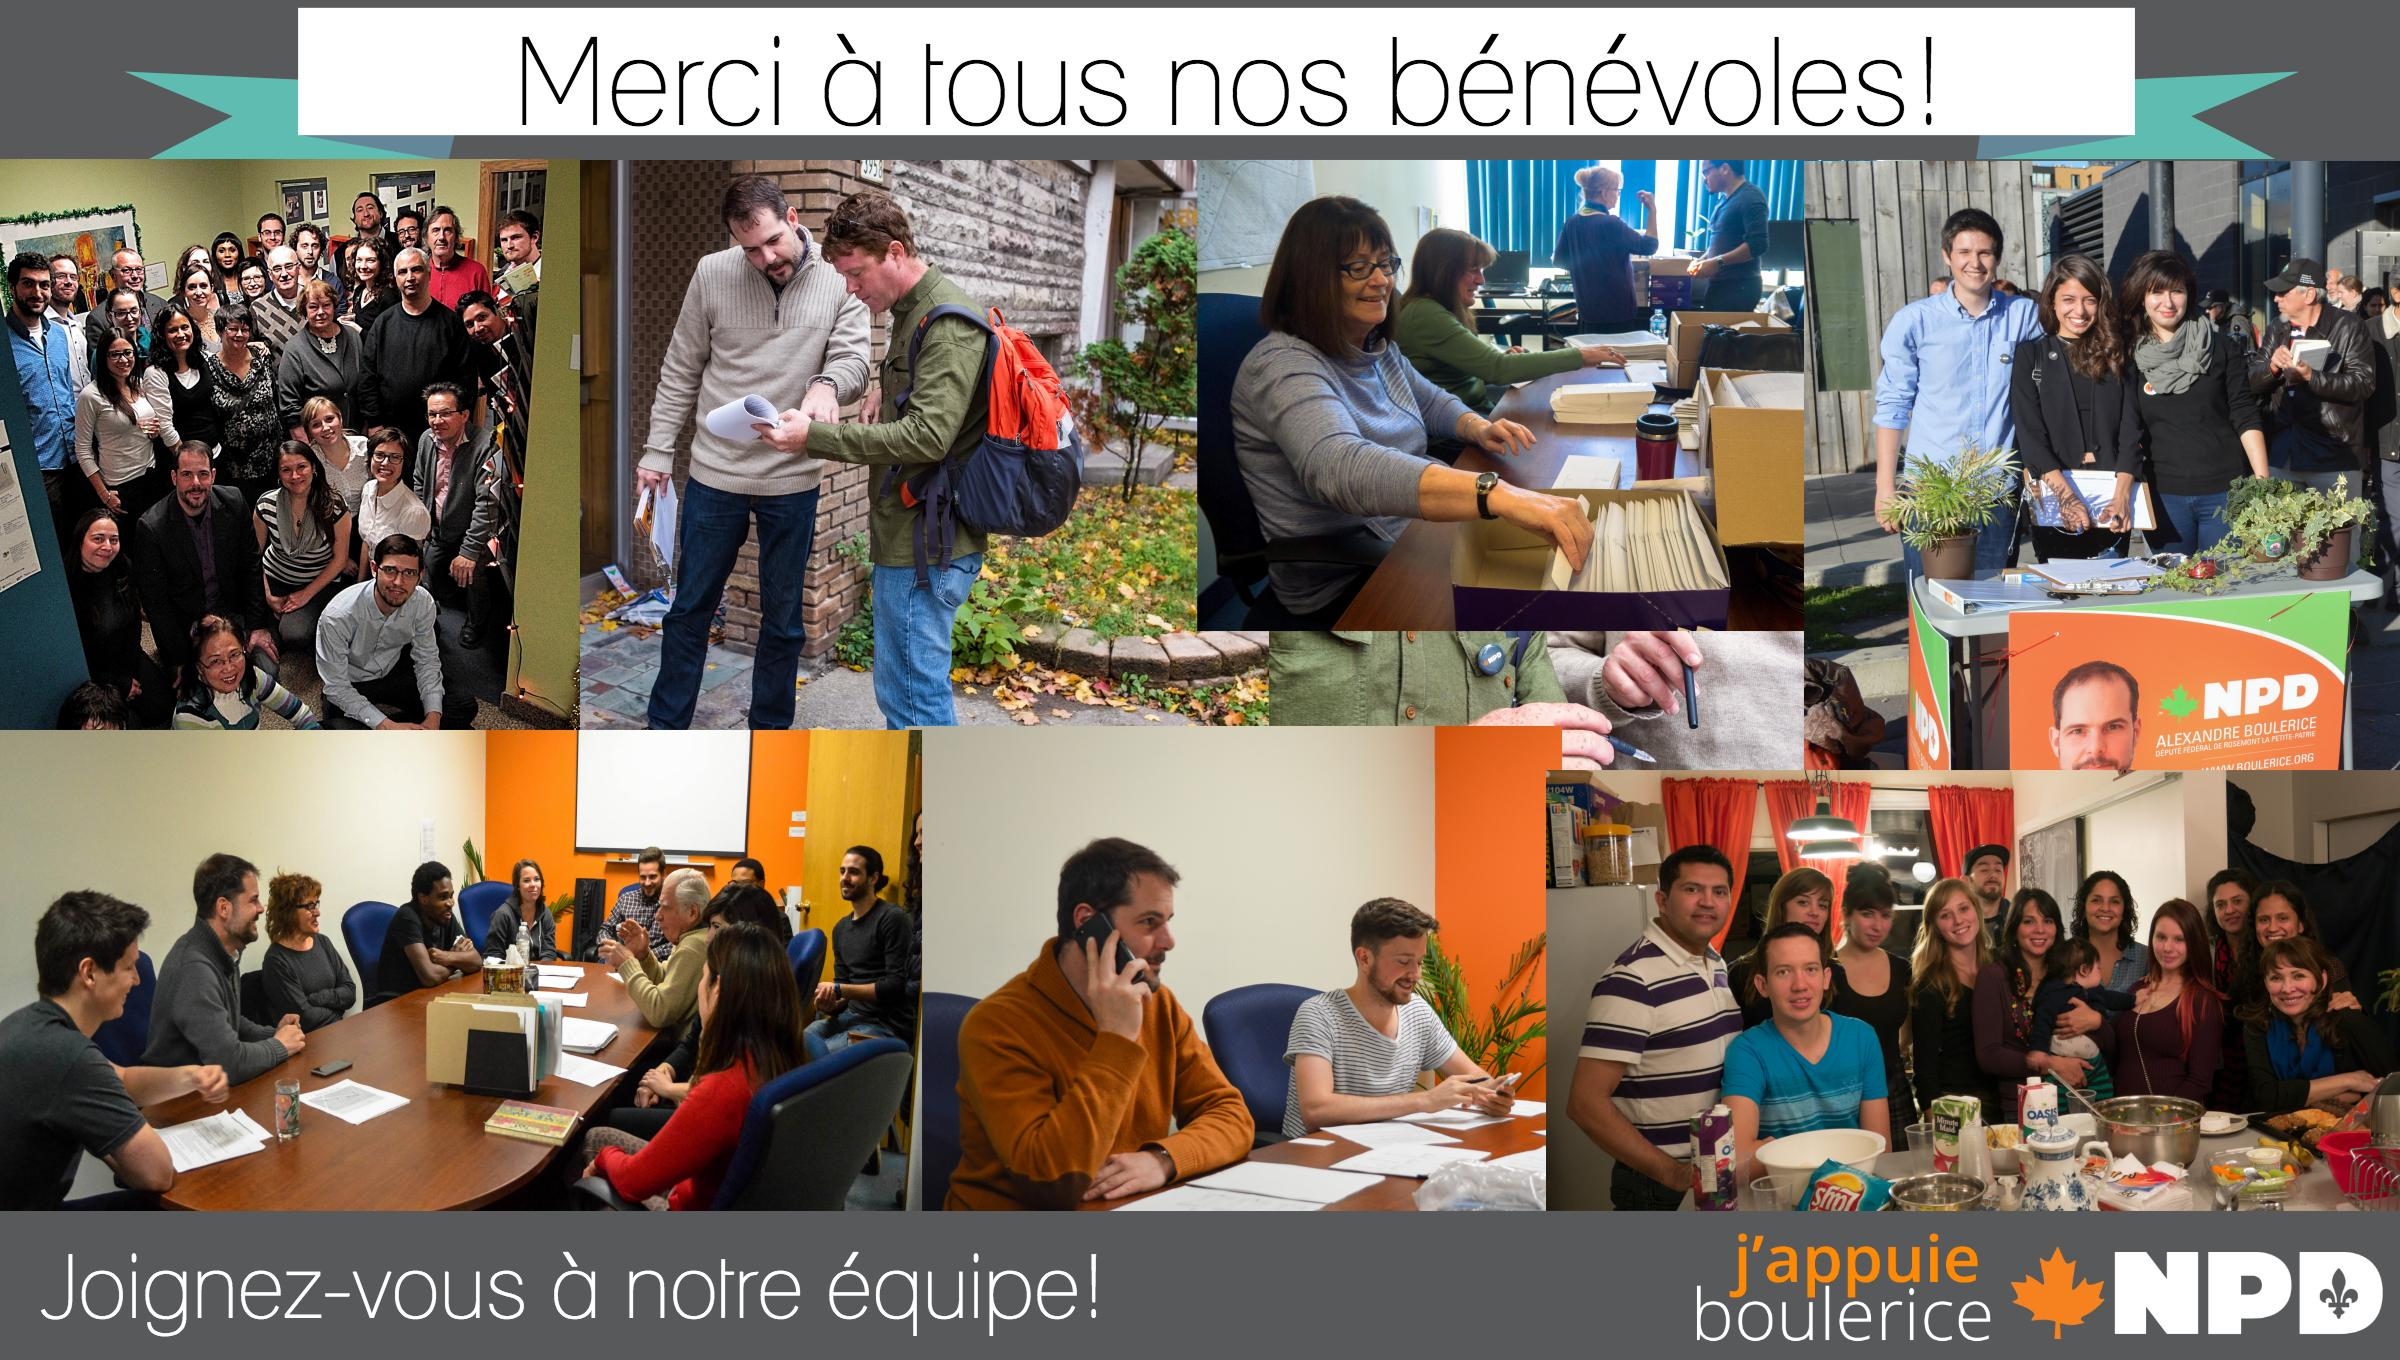 Merci_ben.jpeg